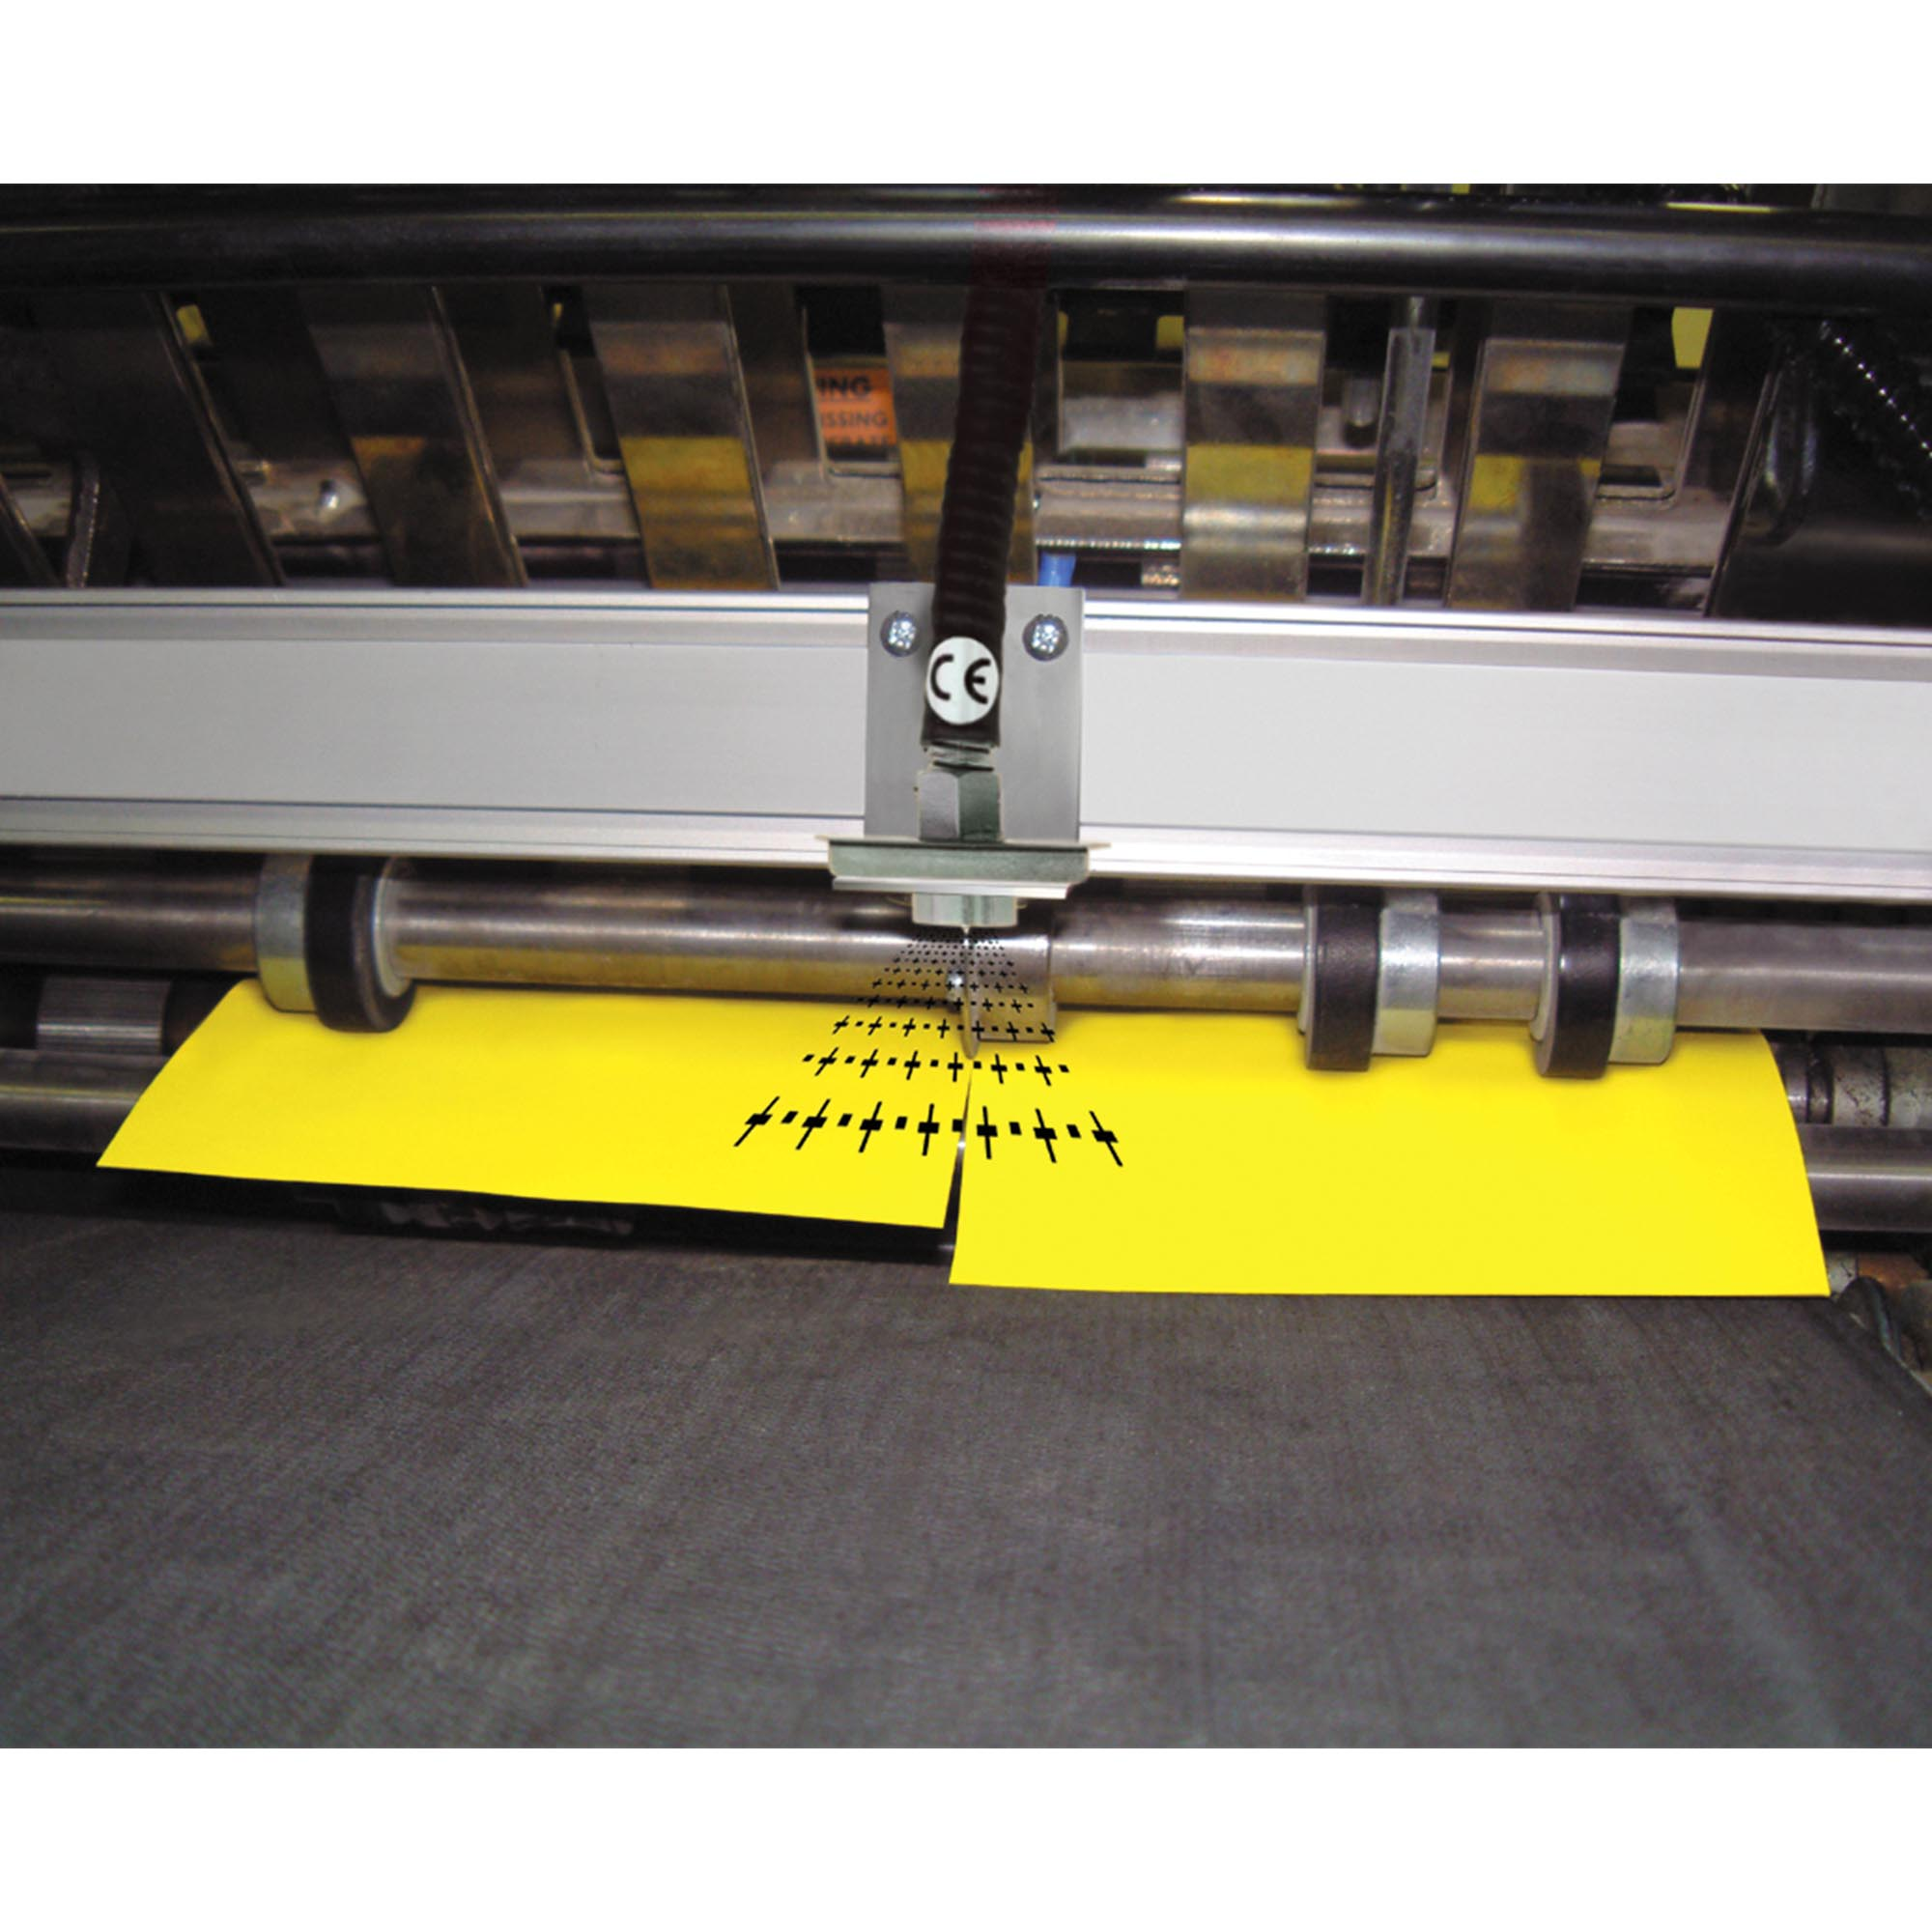 This Gen4 Ionizing Point removes static from a paper slitting operation.